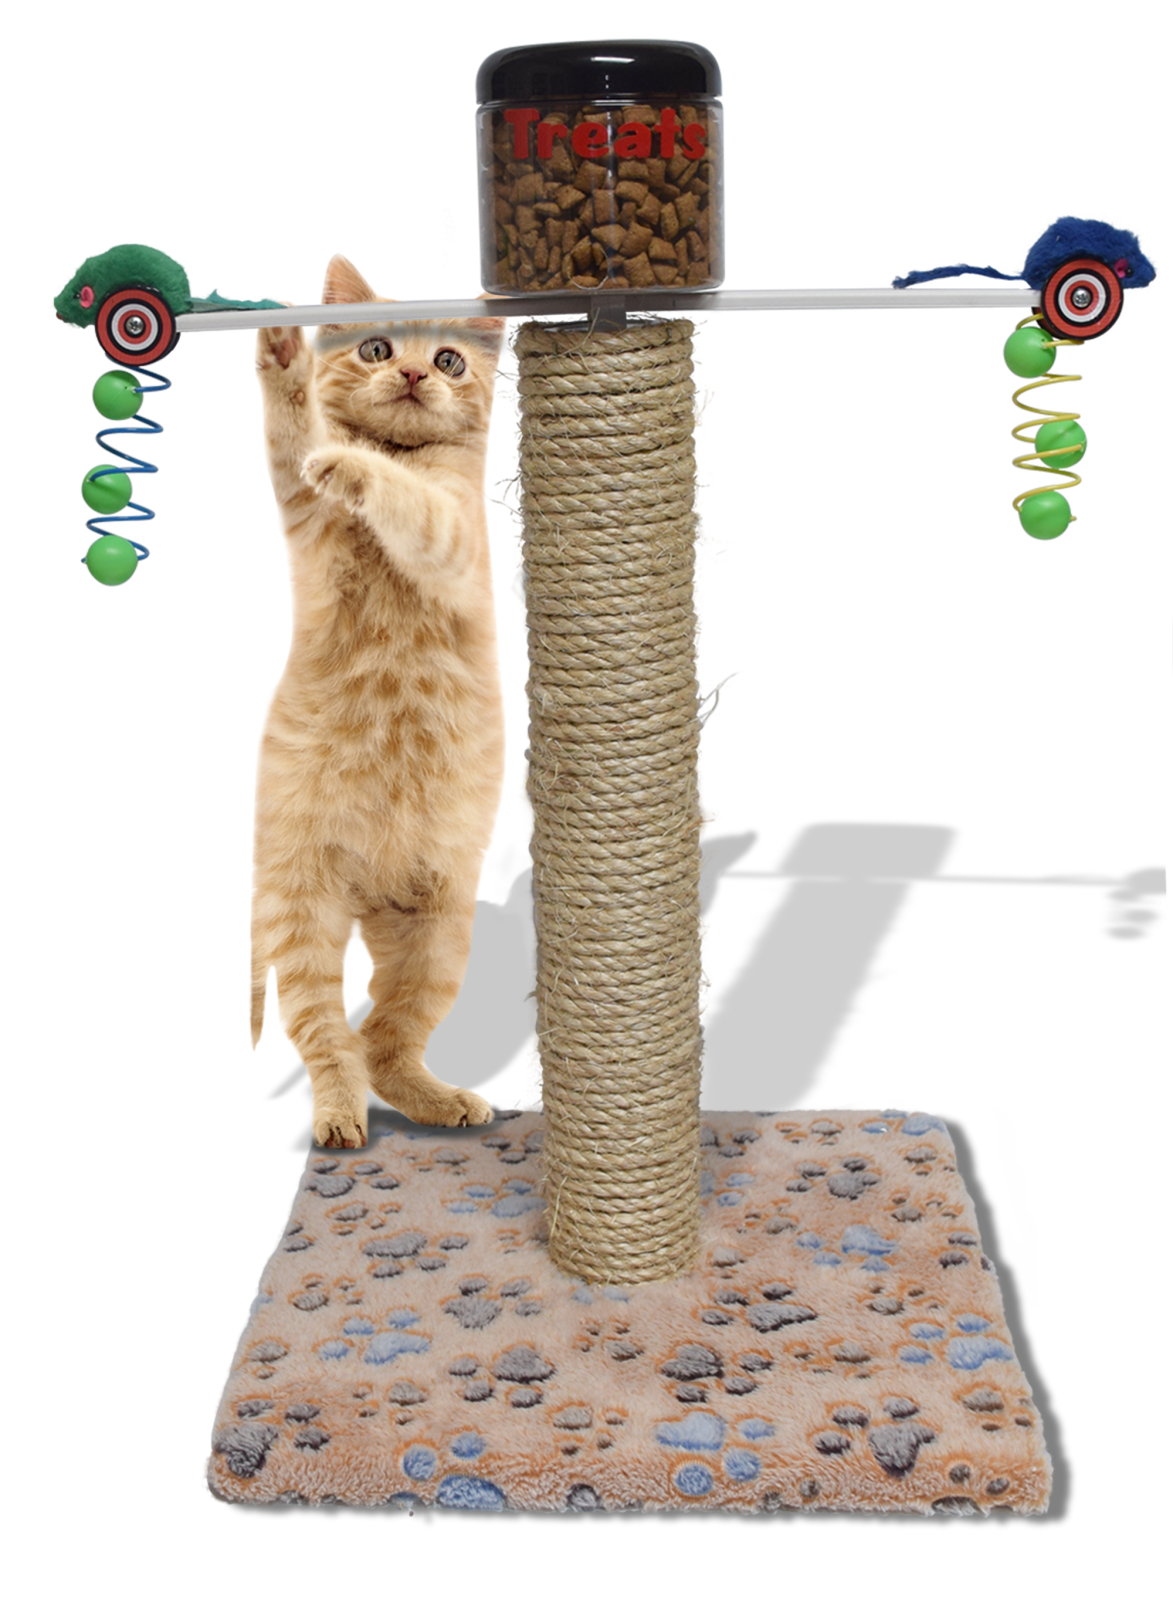 Furhaven tiger tough cat tree house furniture for cats and kittens png. Table playground condo tower